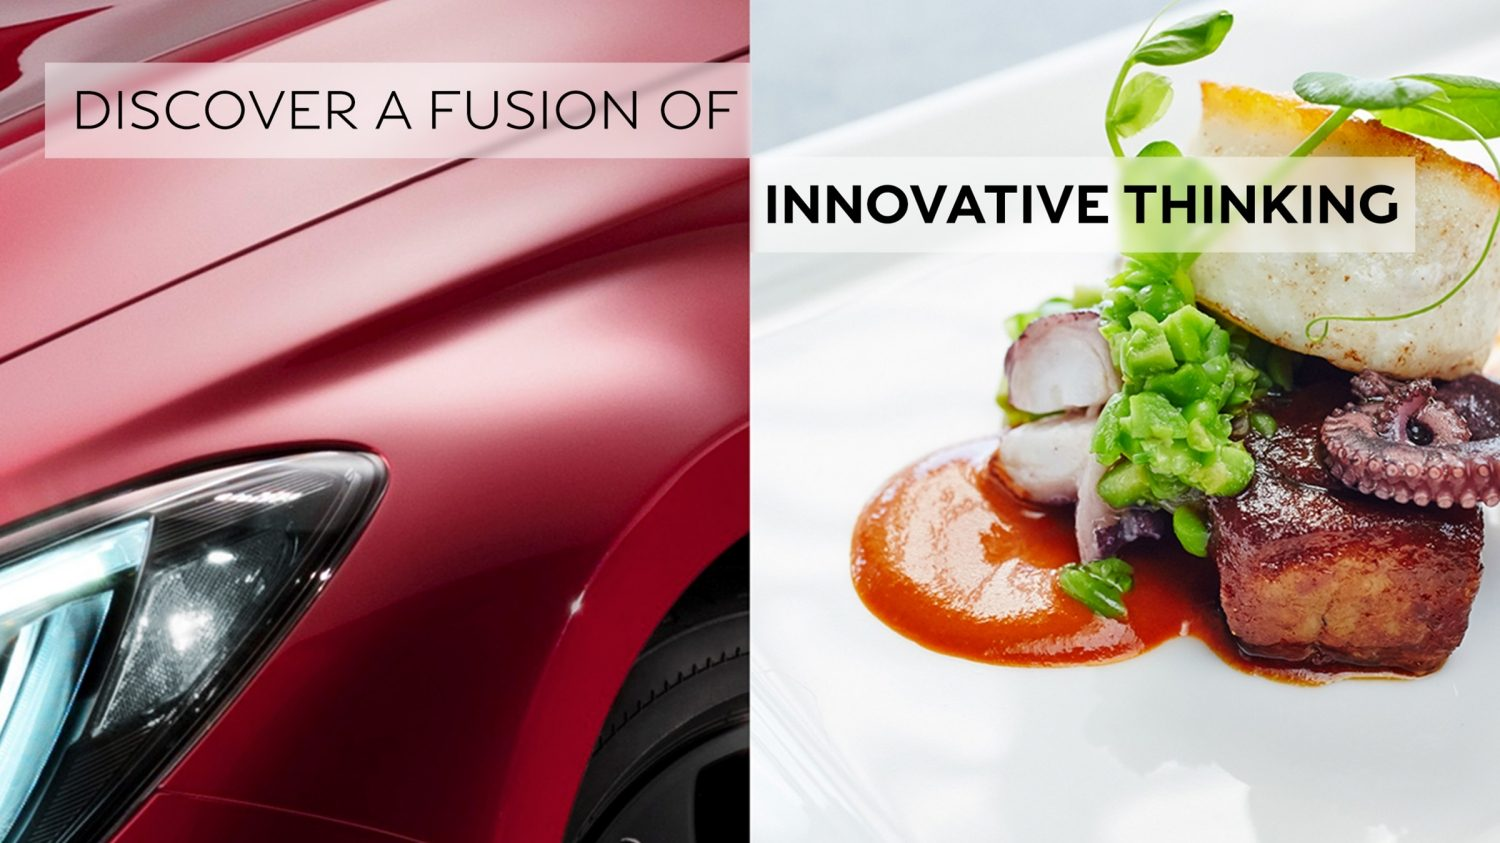 Introducing the INFINITI tastemakers